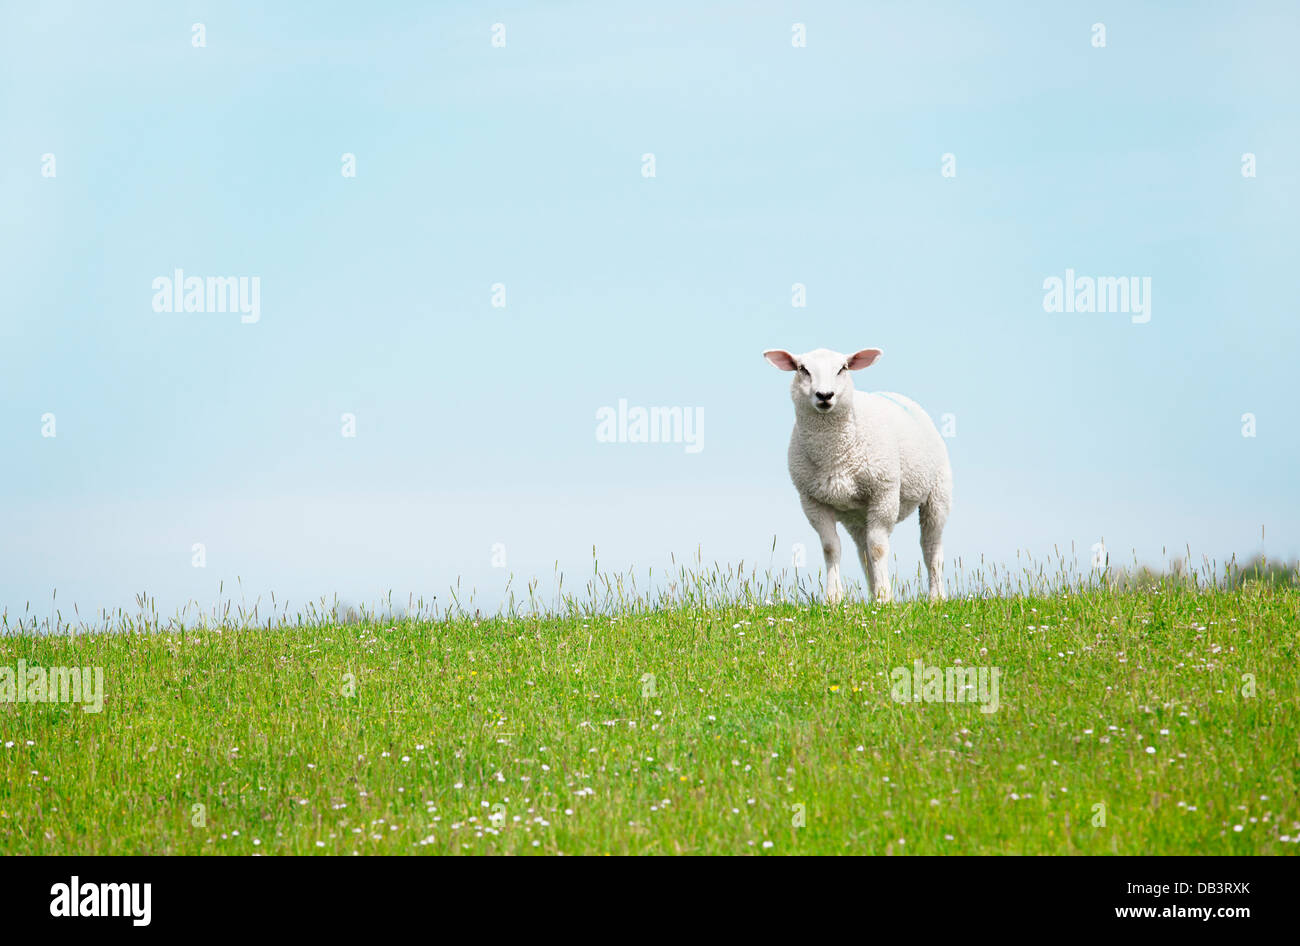 a white sheep standing on the dike and looking at the camera - Stock Image